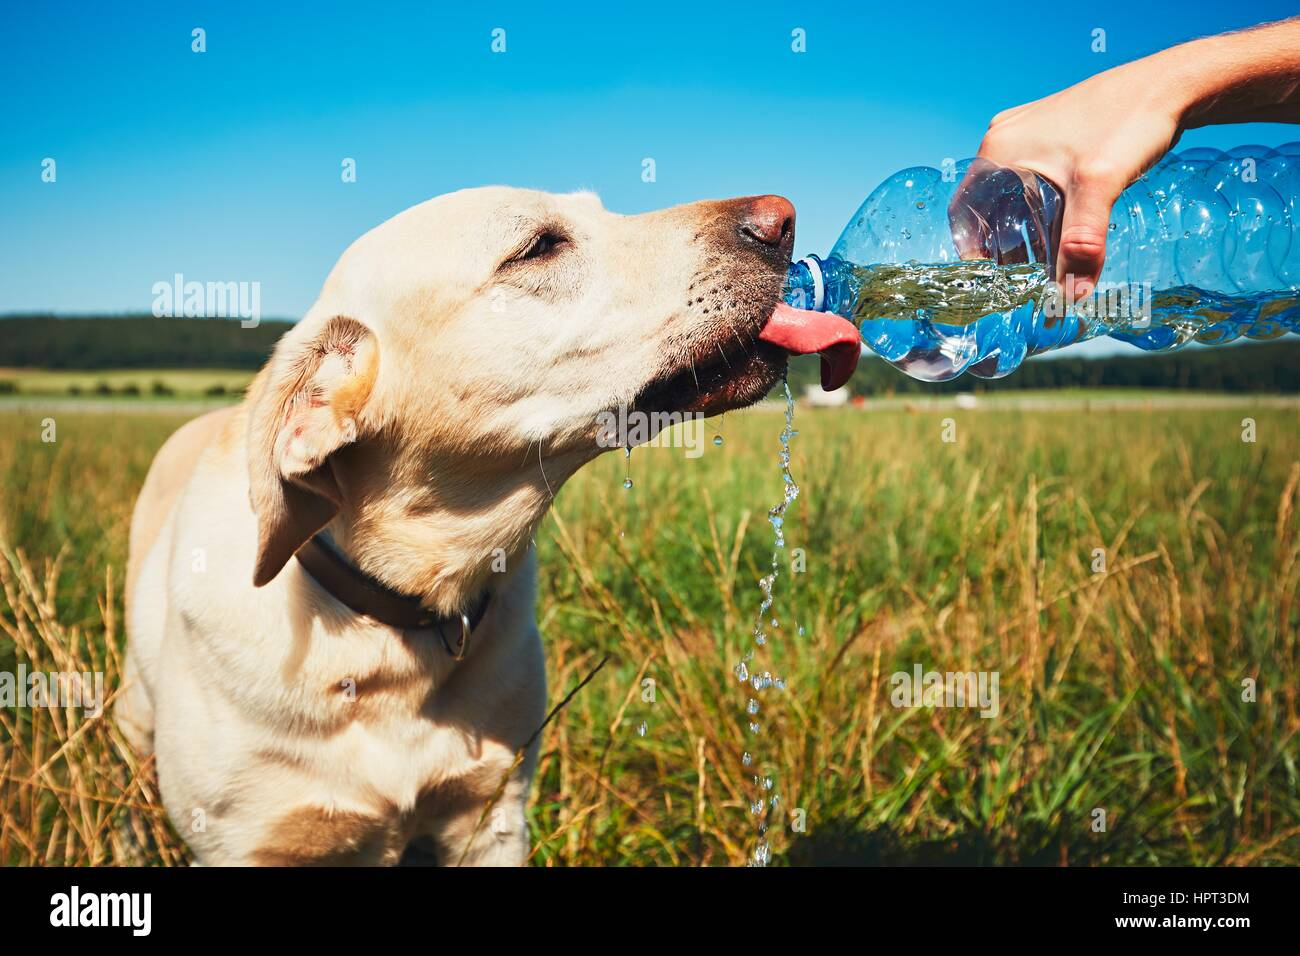 Hot day with dog. Thirsty yellow labrador retriever drinking water from the plastic bottle his owner. - Stock Image